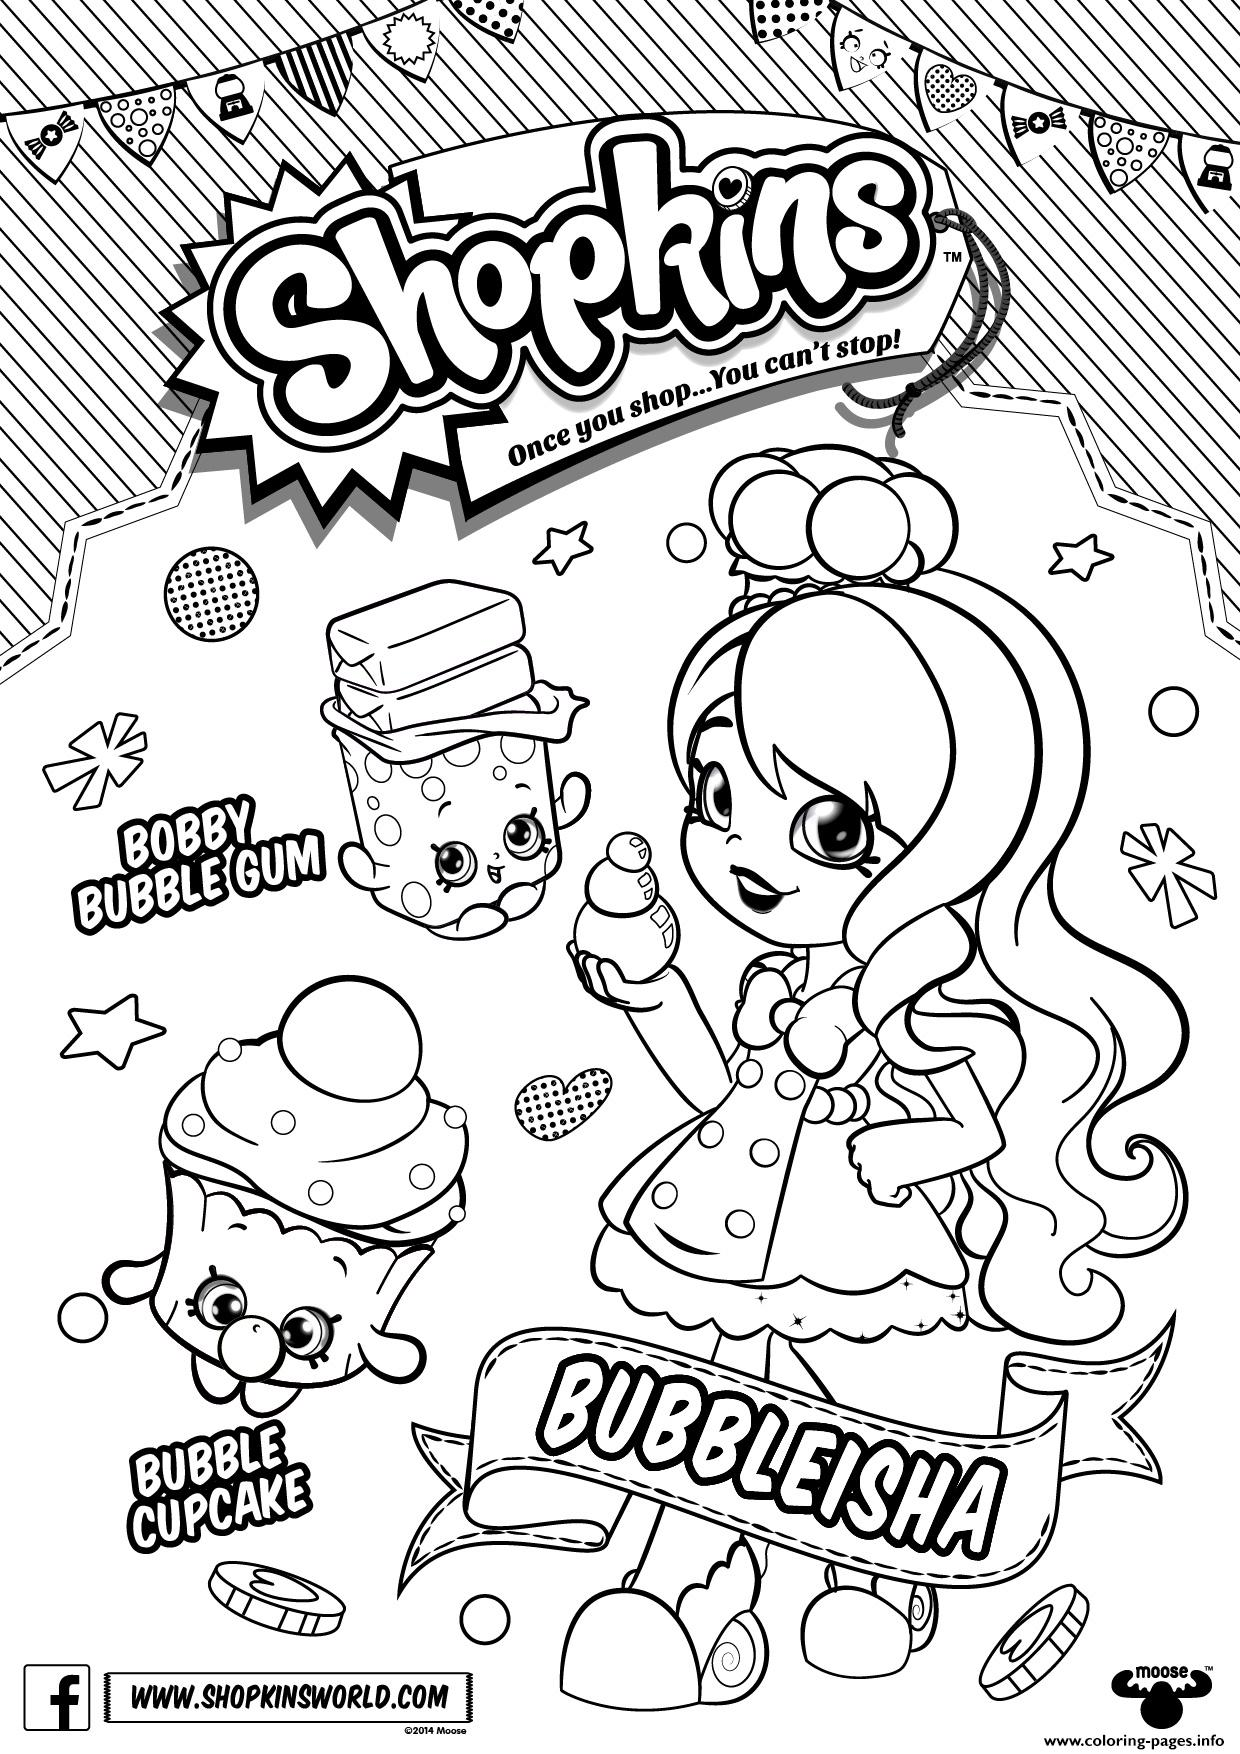 bubbleisha shopkins shoppies with bubble gum coloring pages printable